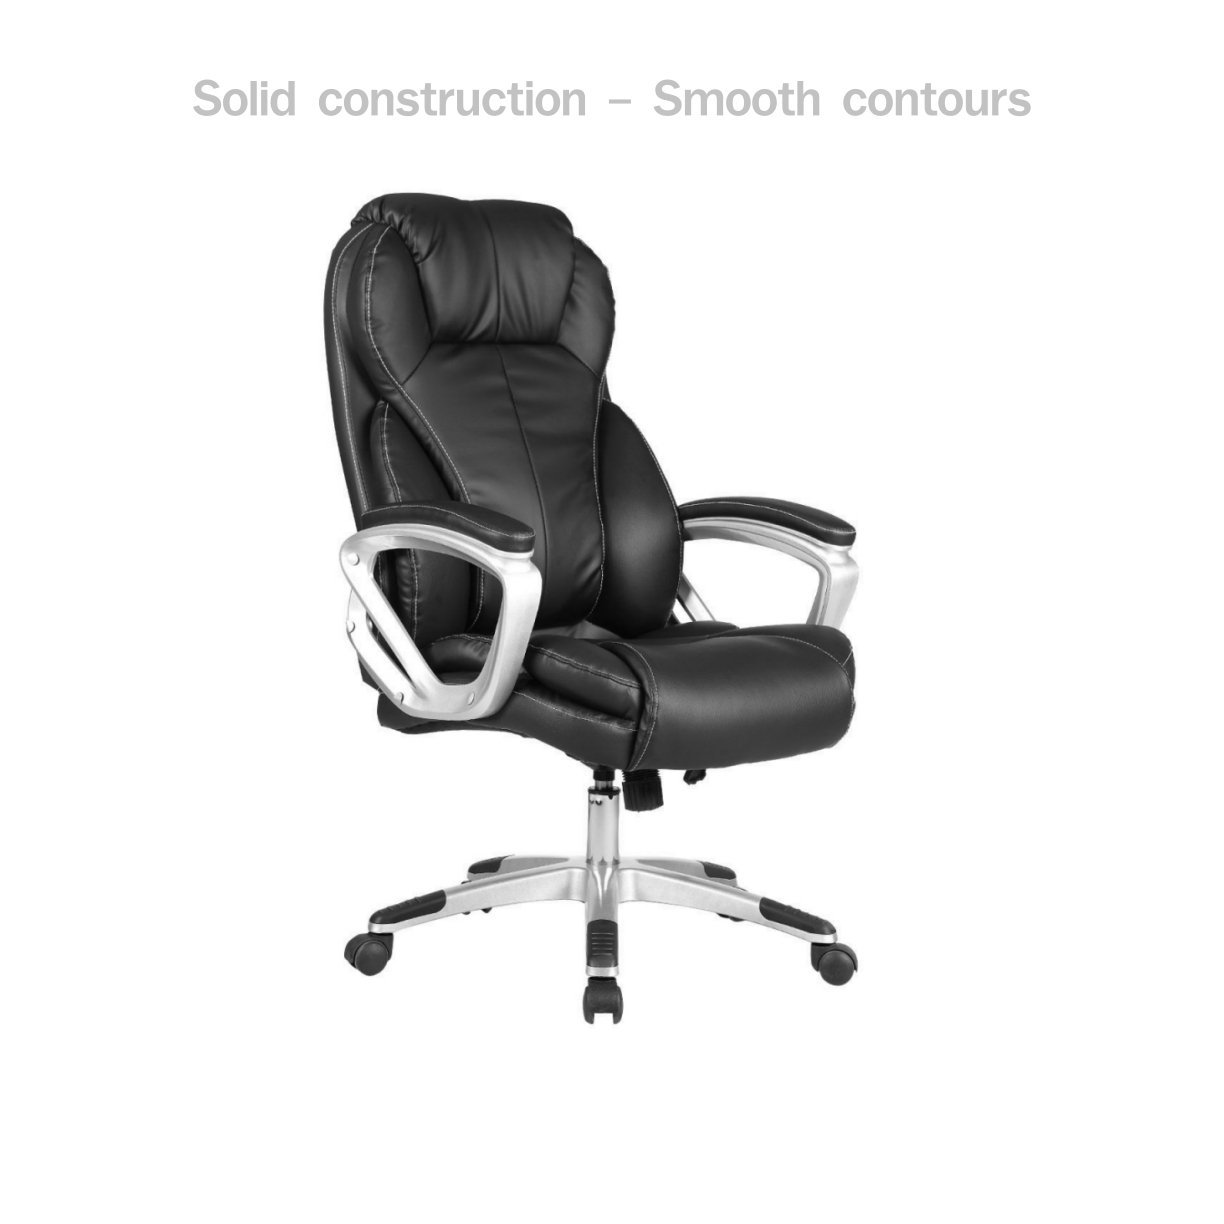 Modern Executive Office Chair High Back Design Smooth Contours Adjustable Height PU Leather Upholstery Posture Backrest Support Comfortable Armrest Heavy-duty 5 Casters Home Office Furniture #1701